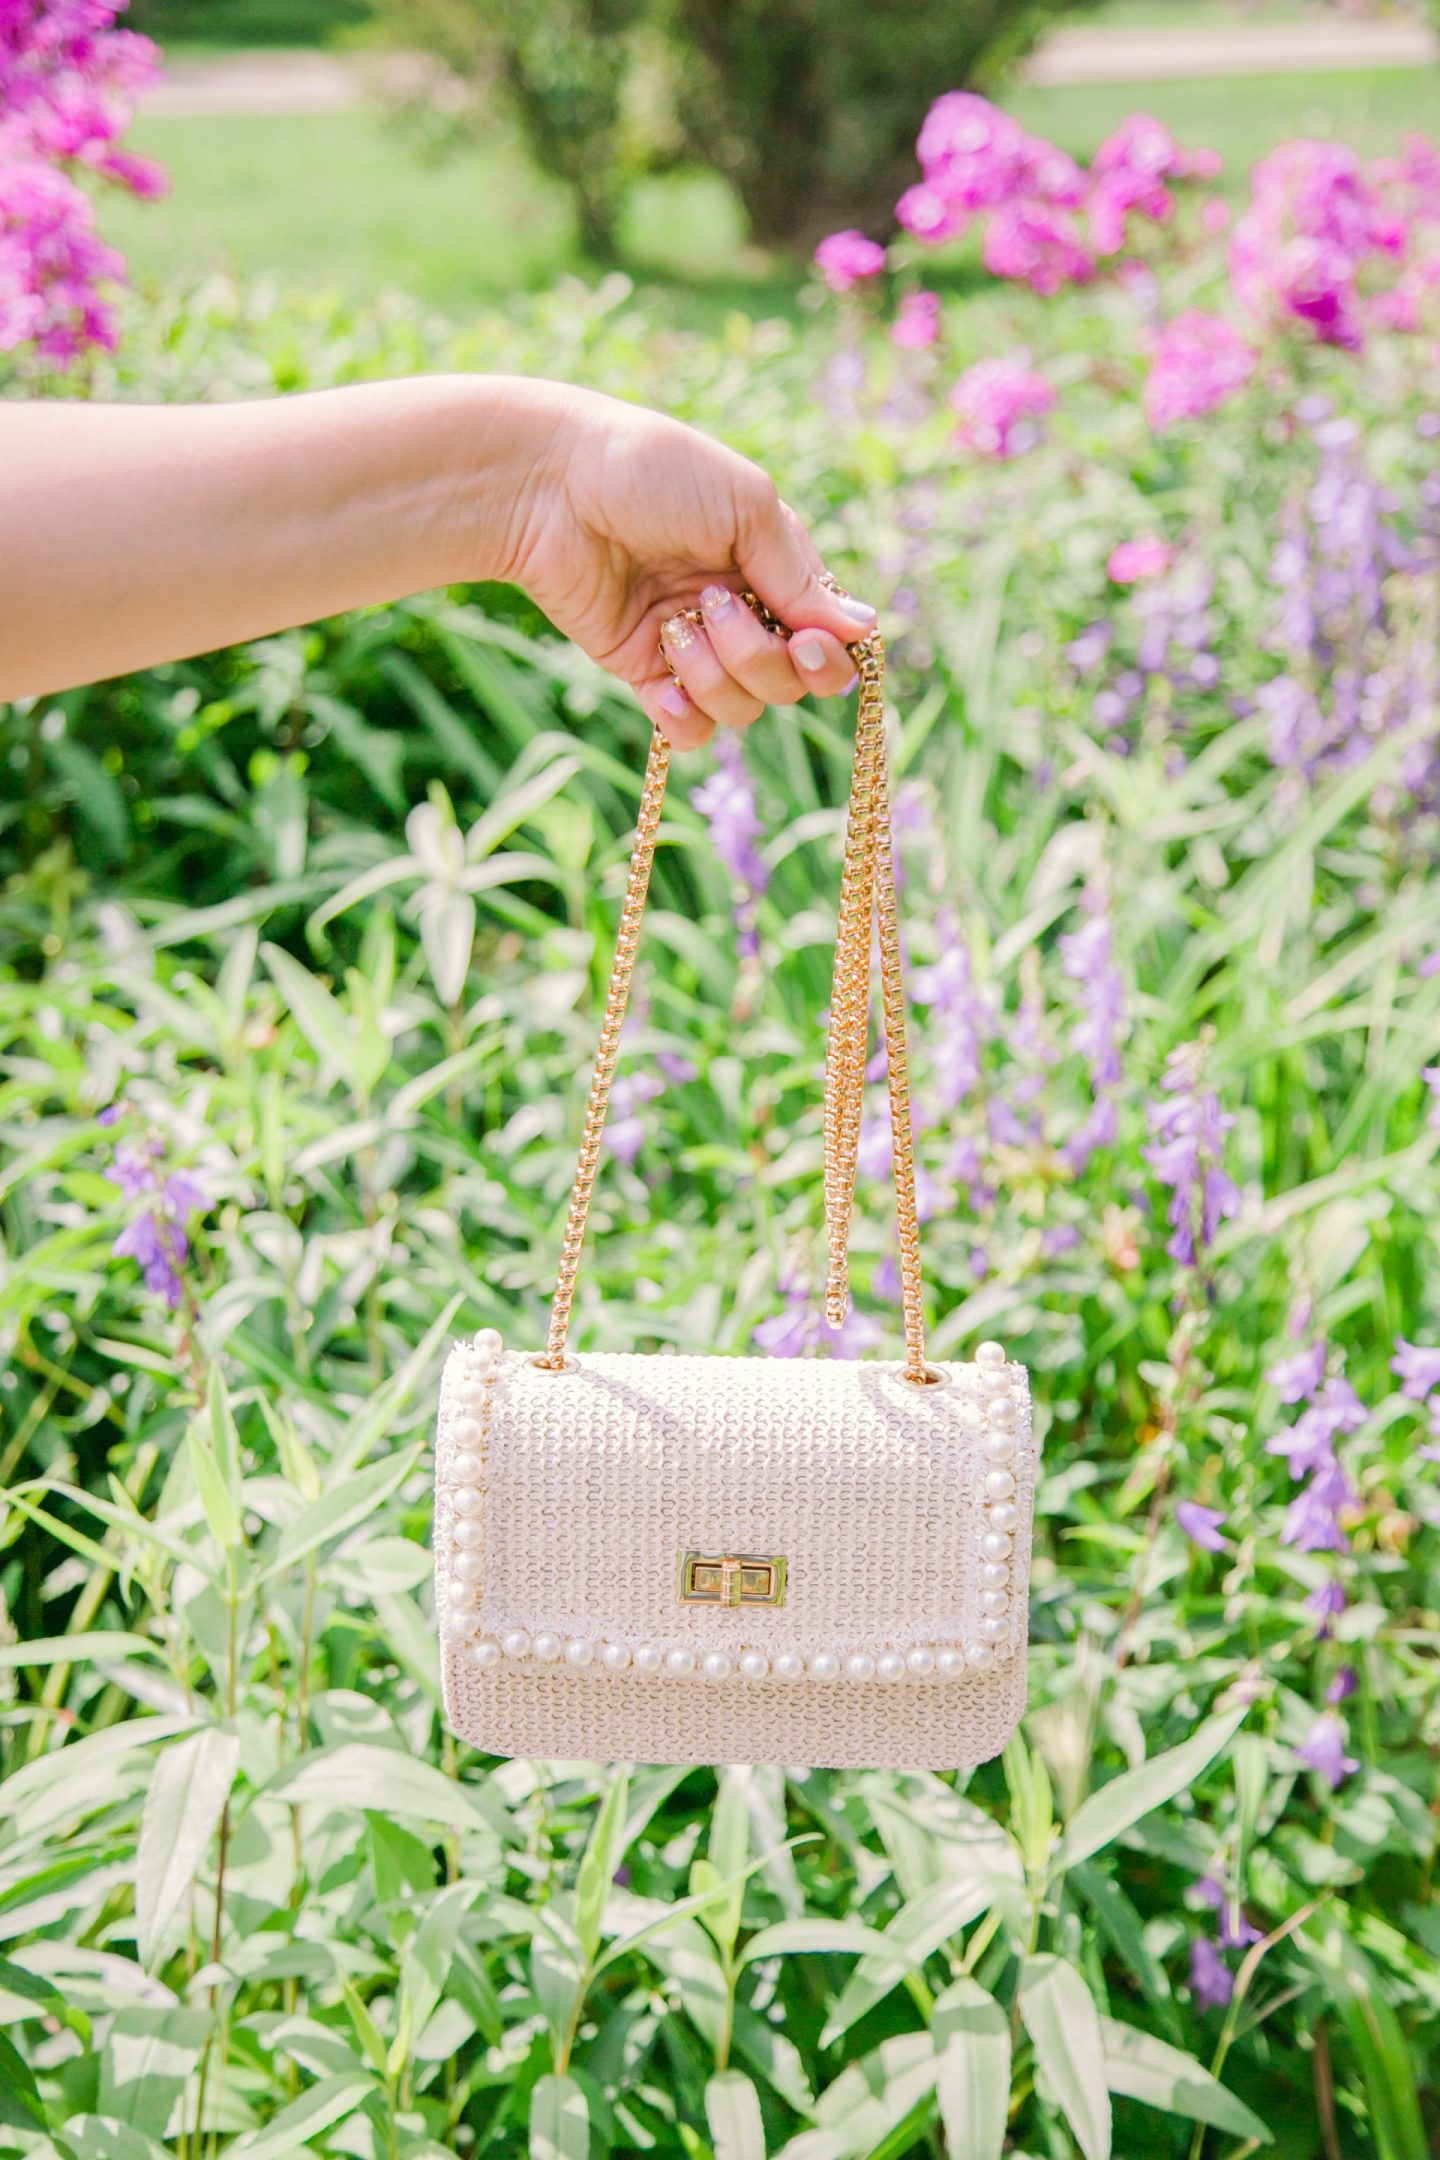 Super affordable Chanel Inspired Tweed Pearl Purse